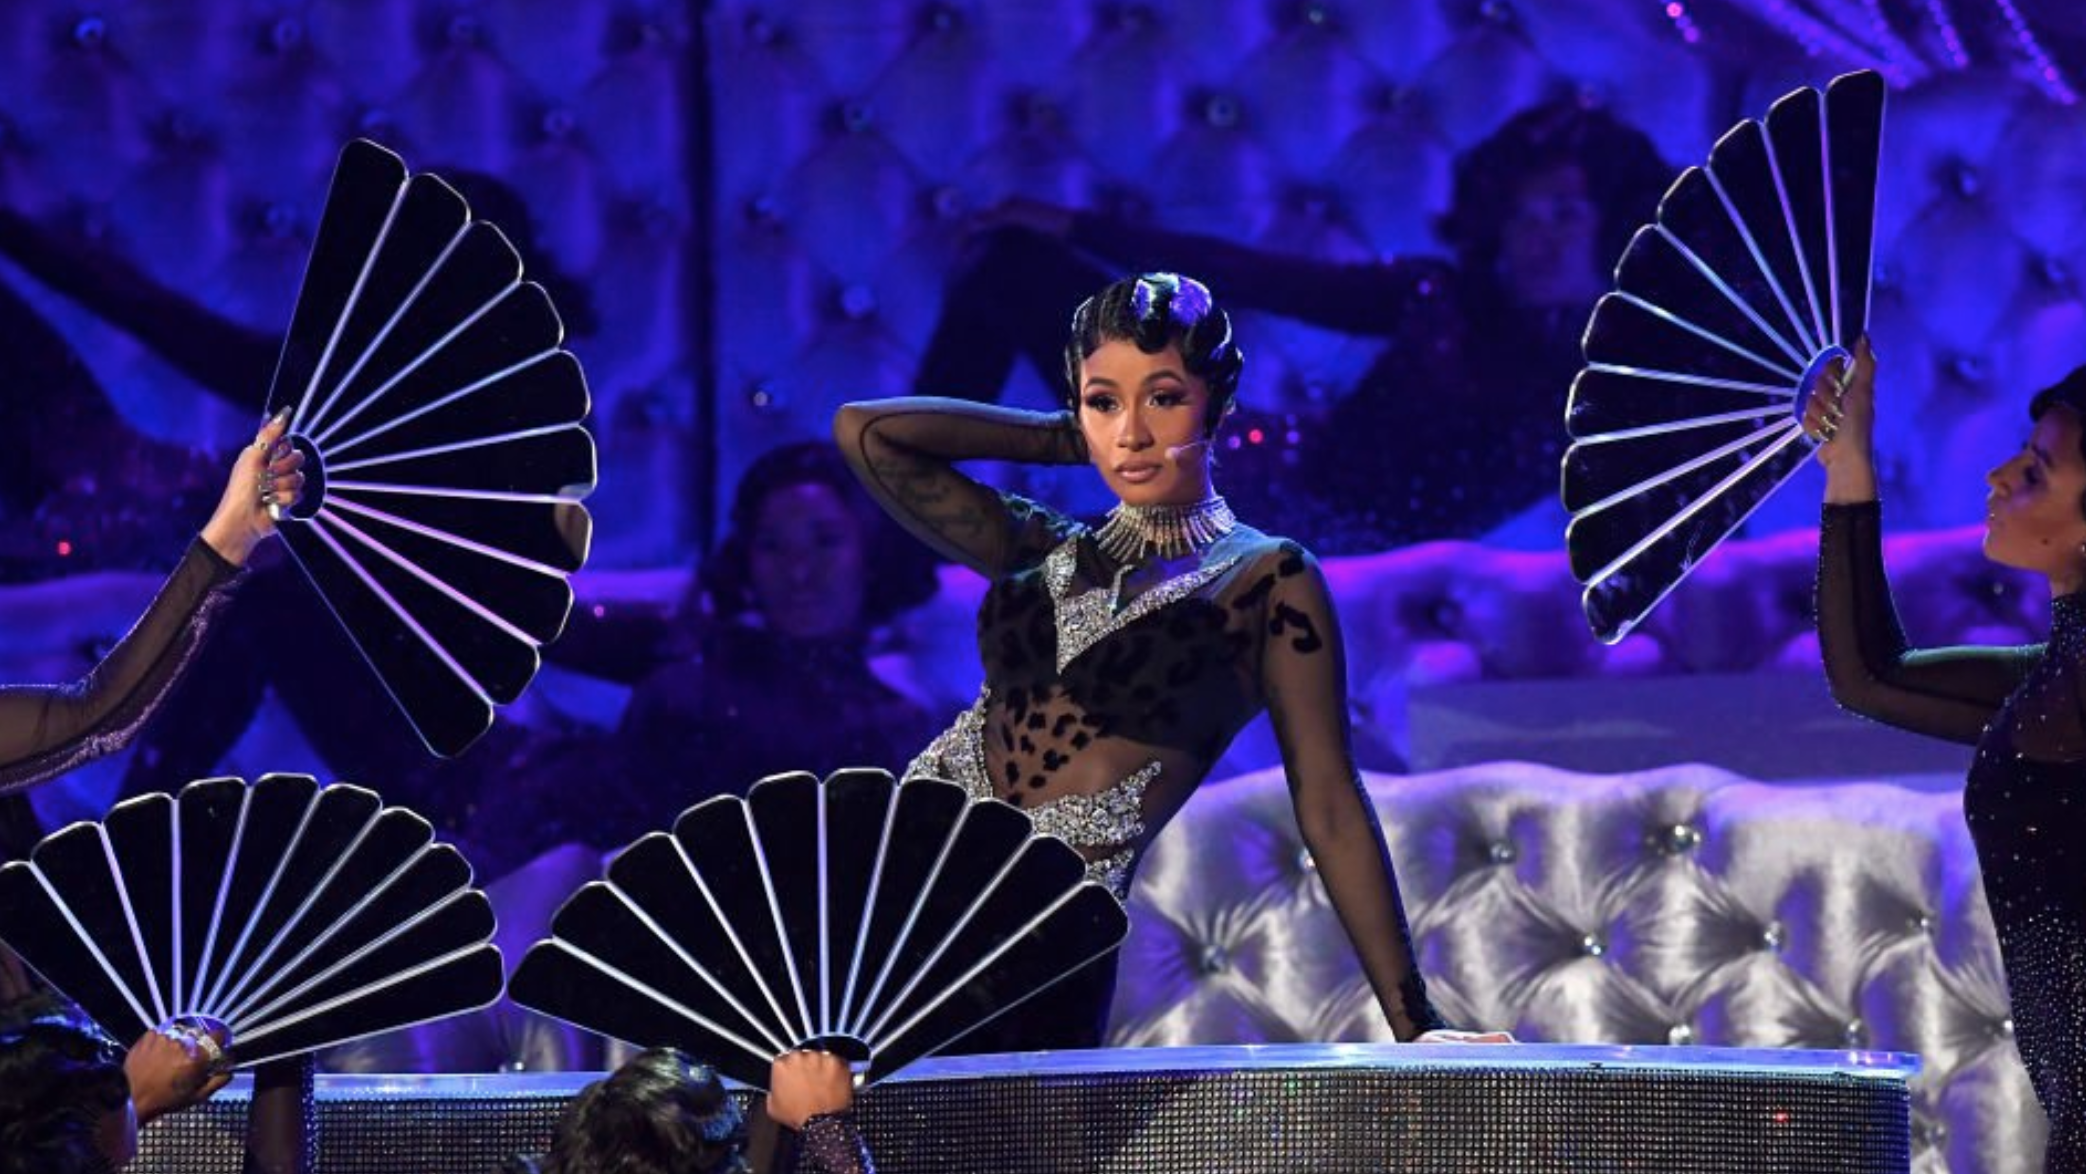 Cardi B maps out 2019 summer tour, first-ever arena shows